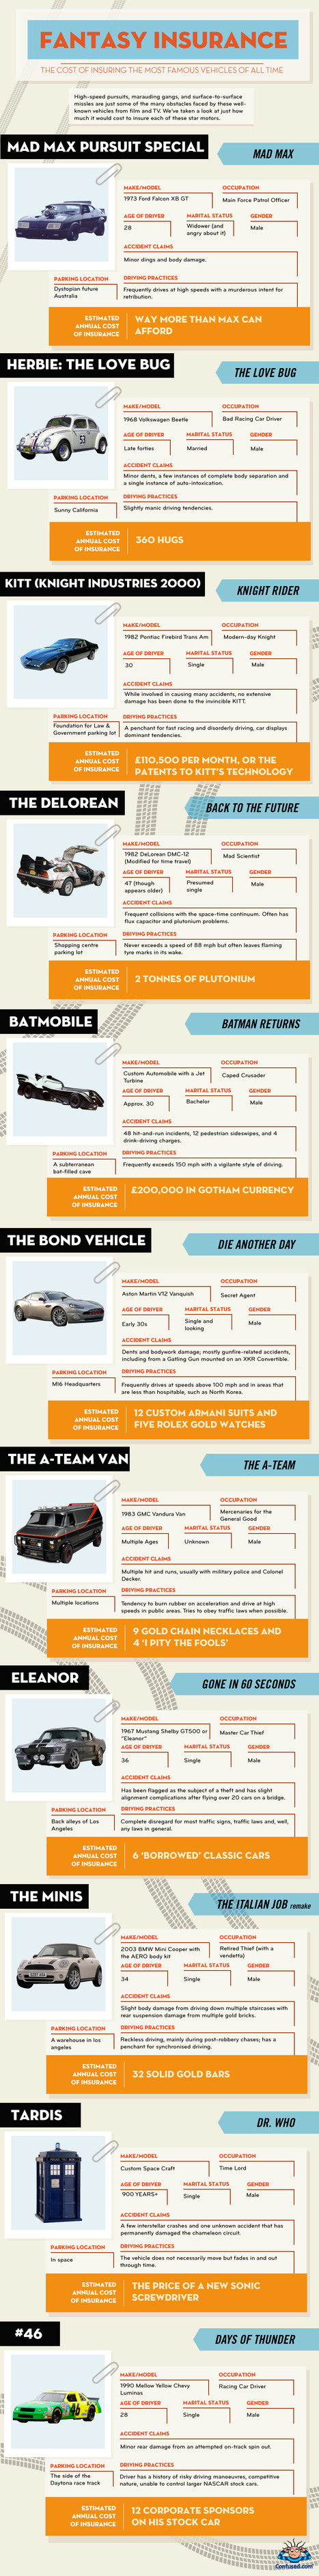 Fantasy car insurance - Infographic showing the cost of insuring famous cars | Infographics | Scoop.it